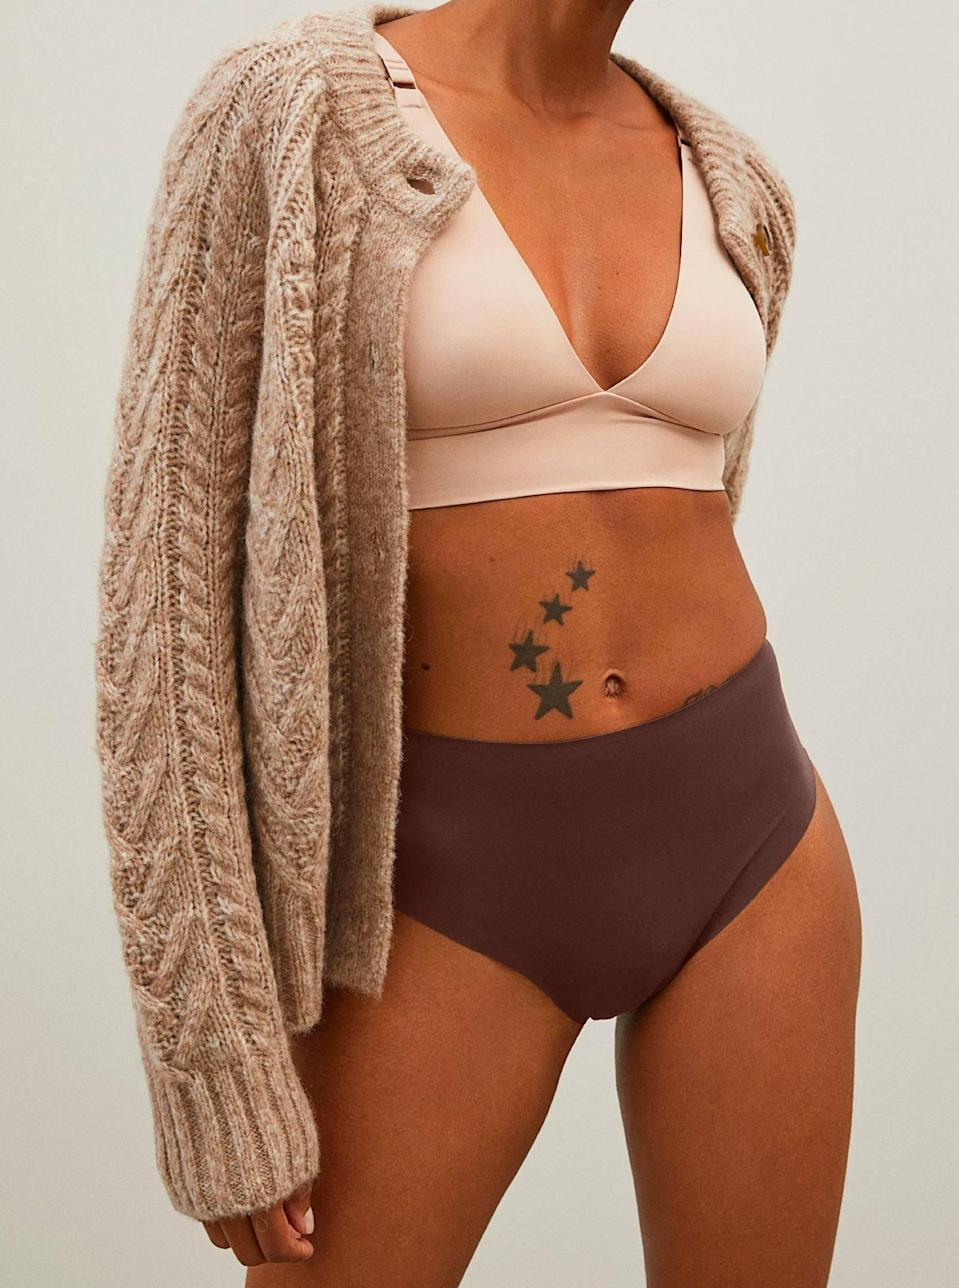 """Everlane's always turning basic-but-better options, like this high-cut brief that'll give you legs for days. $18, Everlane. <a href=""""https://www.everlane.com/products/womens-renew-invisible-thong-darktan?"""" rel=""""nofollow noopener"""" target=""""_blank"""" data-ylk=""""slk:Get it now!"""" class=""""link rapid-noclick-resp"""">Get it now!</a>"""